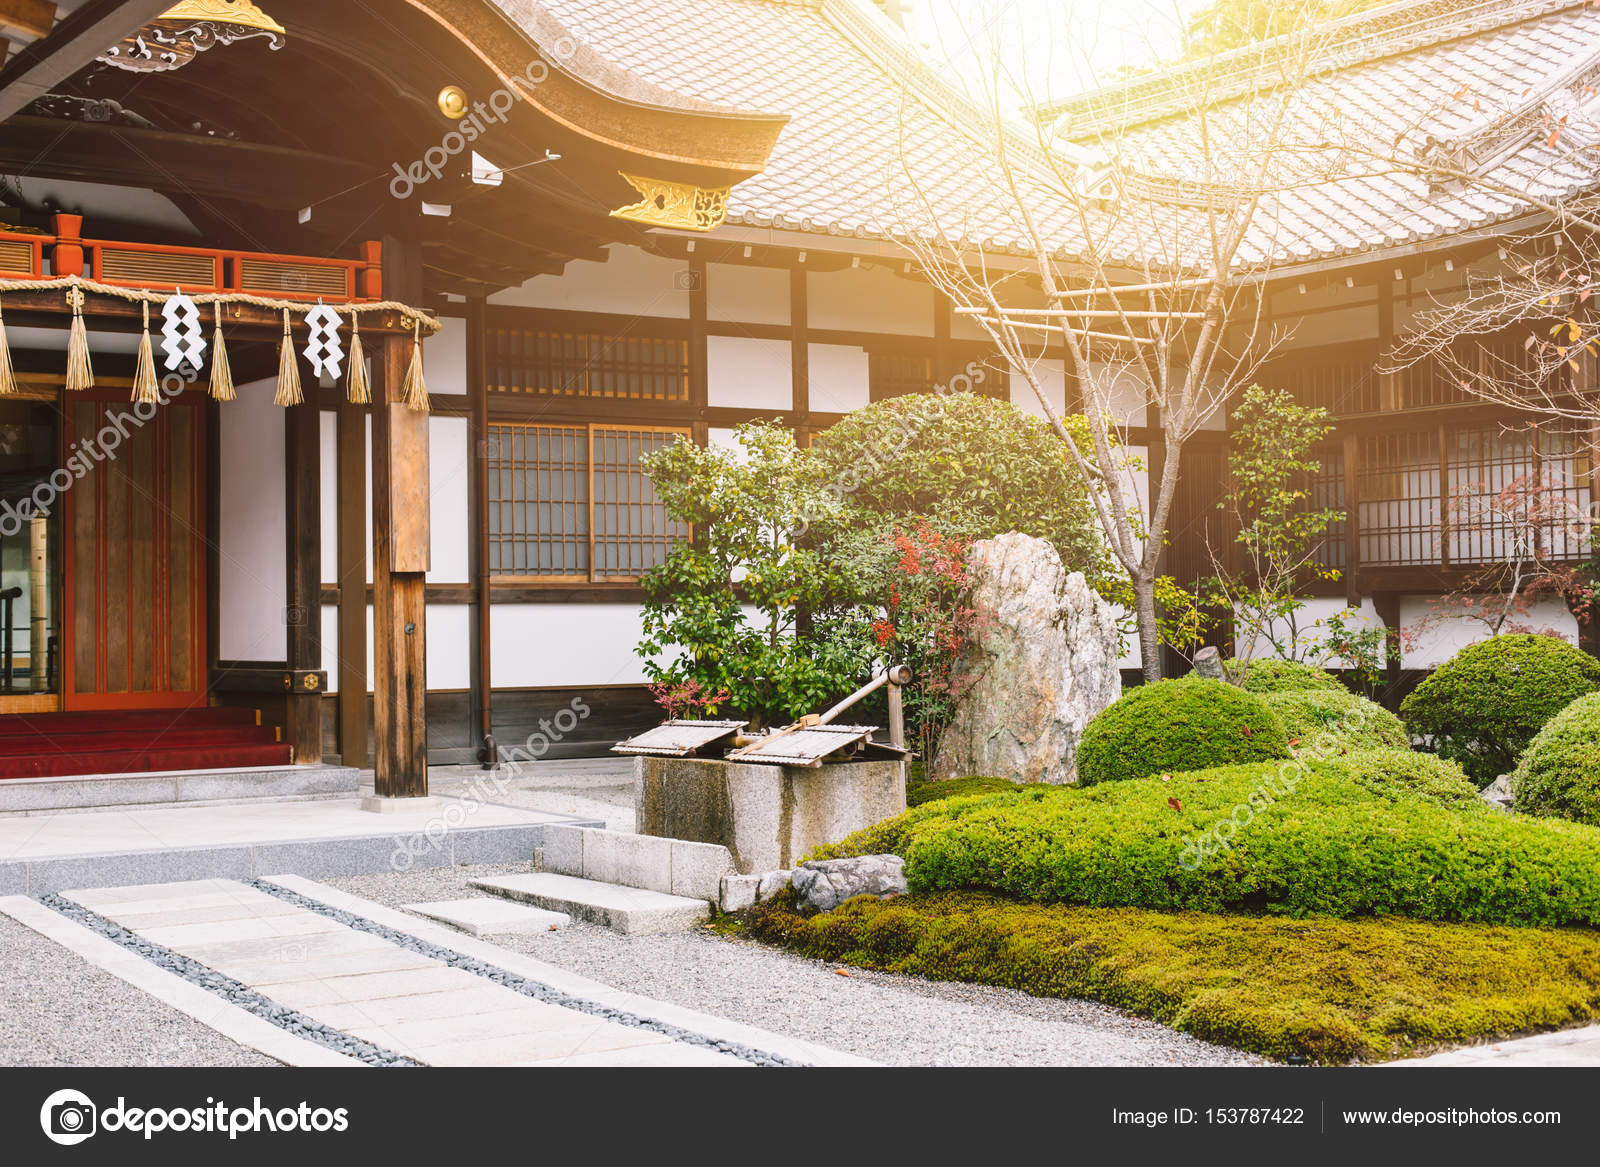 Japan Home Garden Zen Style Traditional Asian Architecture. U2014 Stock Photo